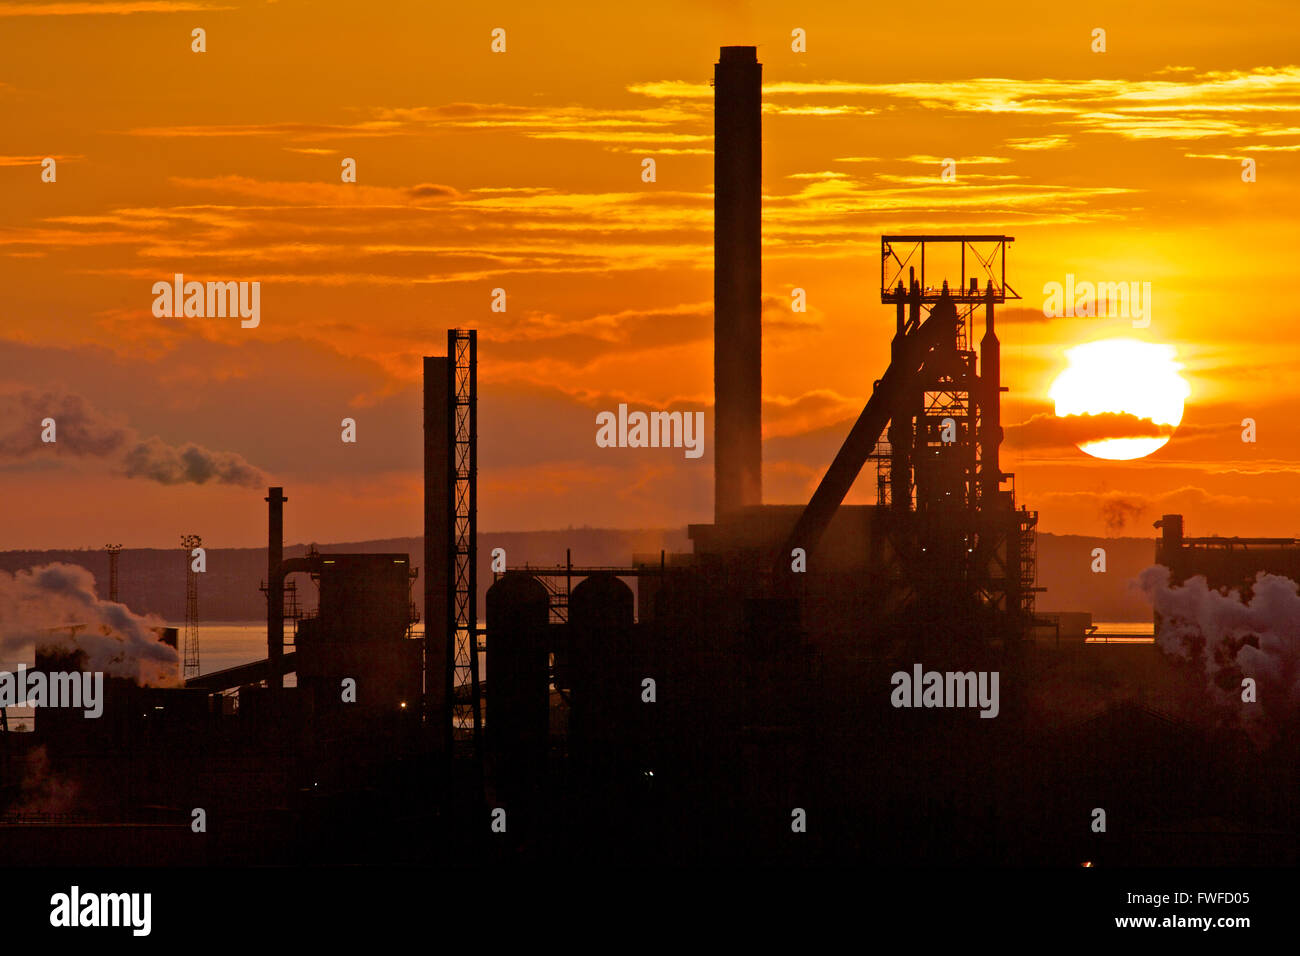 Tata Steel works, Port Talbot, South Wales, UK. 4th April 2016. Sun setts over Tata Steel works, Port Talbot, South Wales, on a day that the Welsh Government was reconvened to discuss the crisis. Over 4000 jobs are under risk after Tata steel announced it's intention last week to sell it's steel working sites across the UK. Credit:  Haydn Denman/Alamy Live News Stock Photo